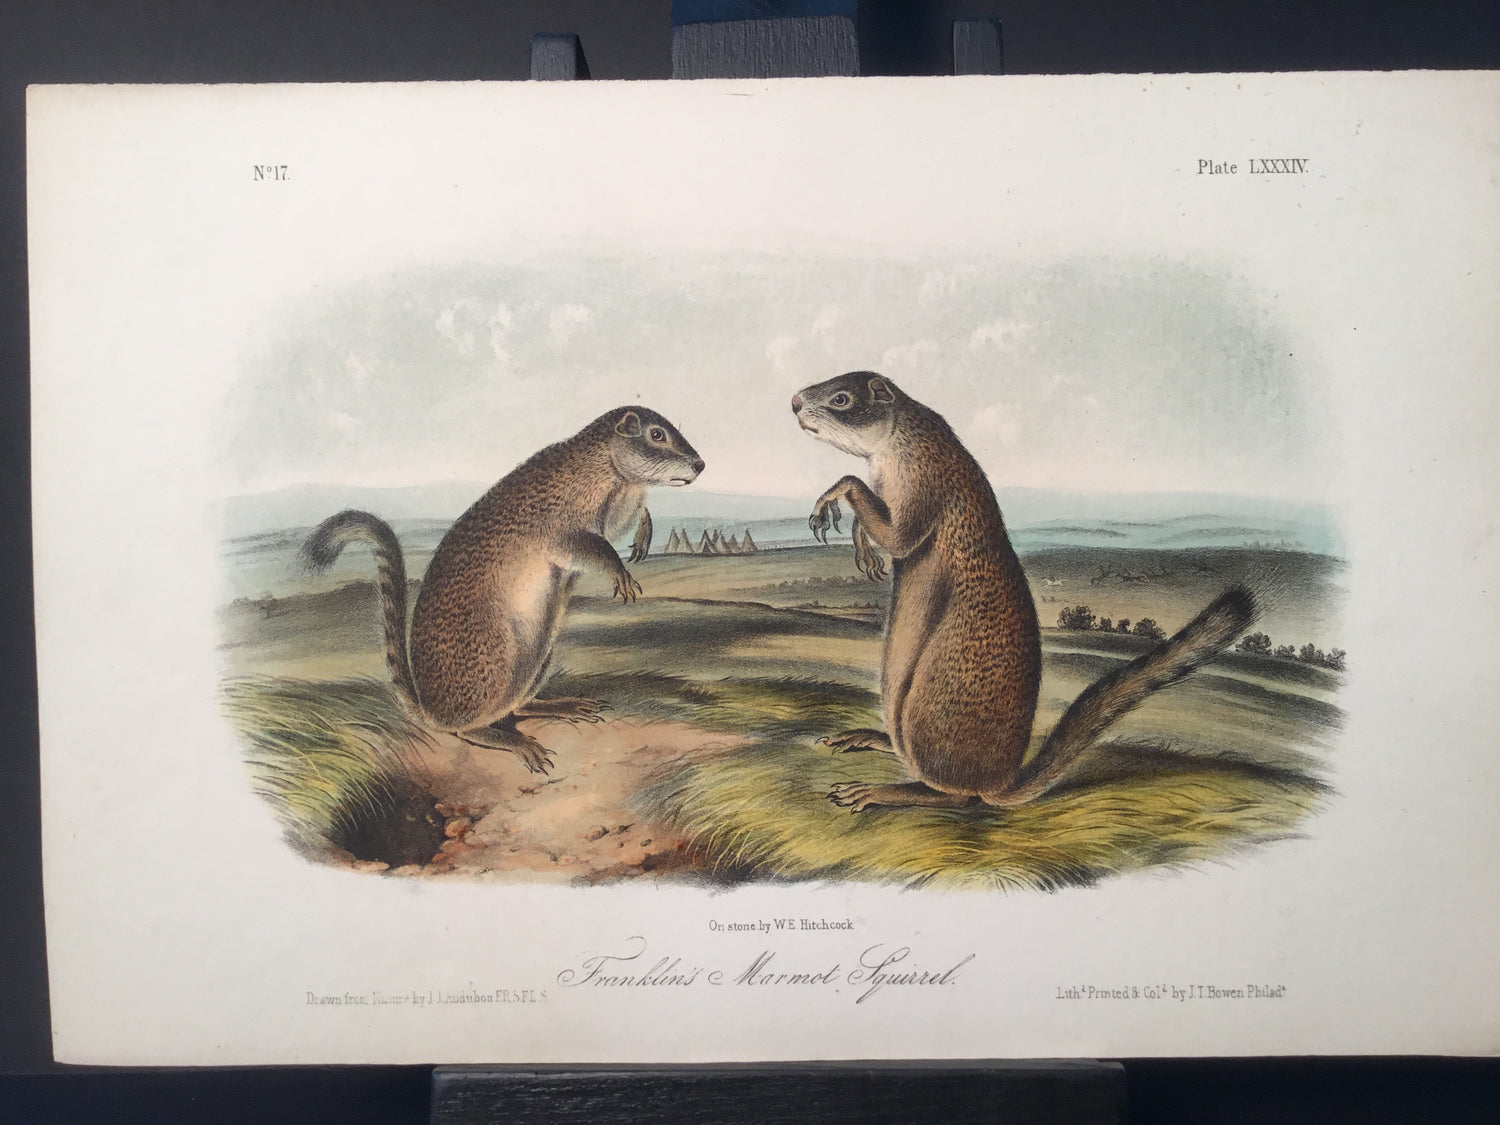 Lord-Hopkins Collection - Franklin's Marmot Squirrel